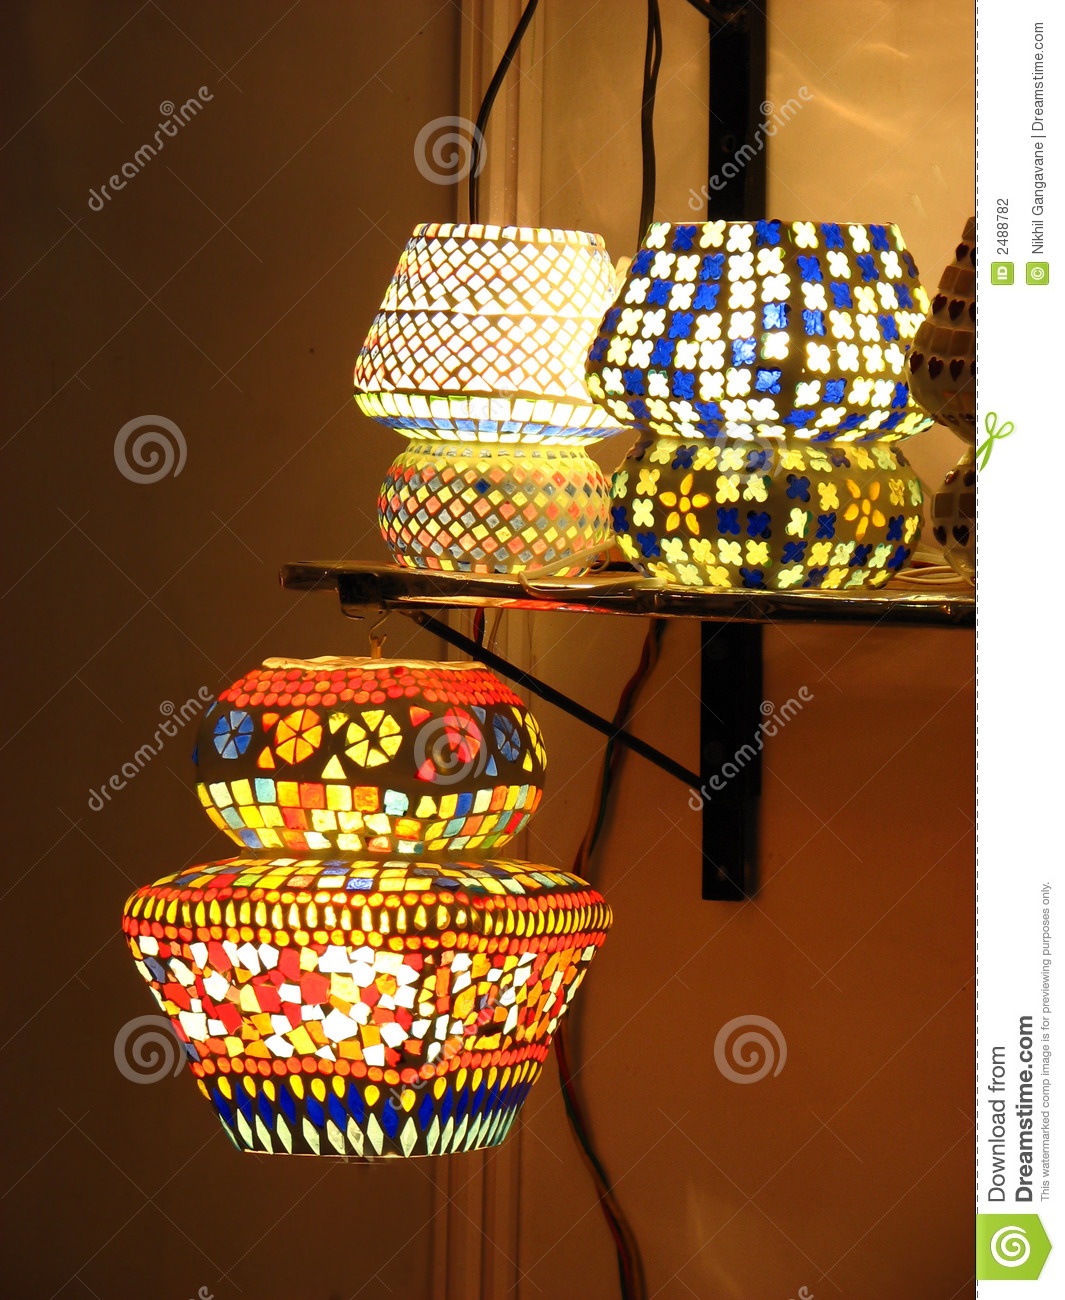 Beautiful Lampshades stock photo. Image of asian, creative - 2488782